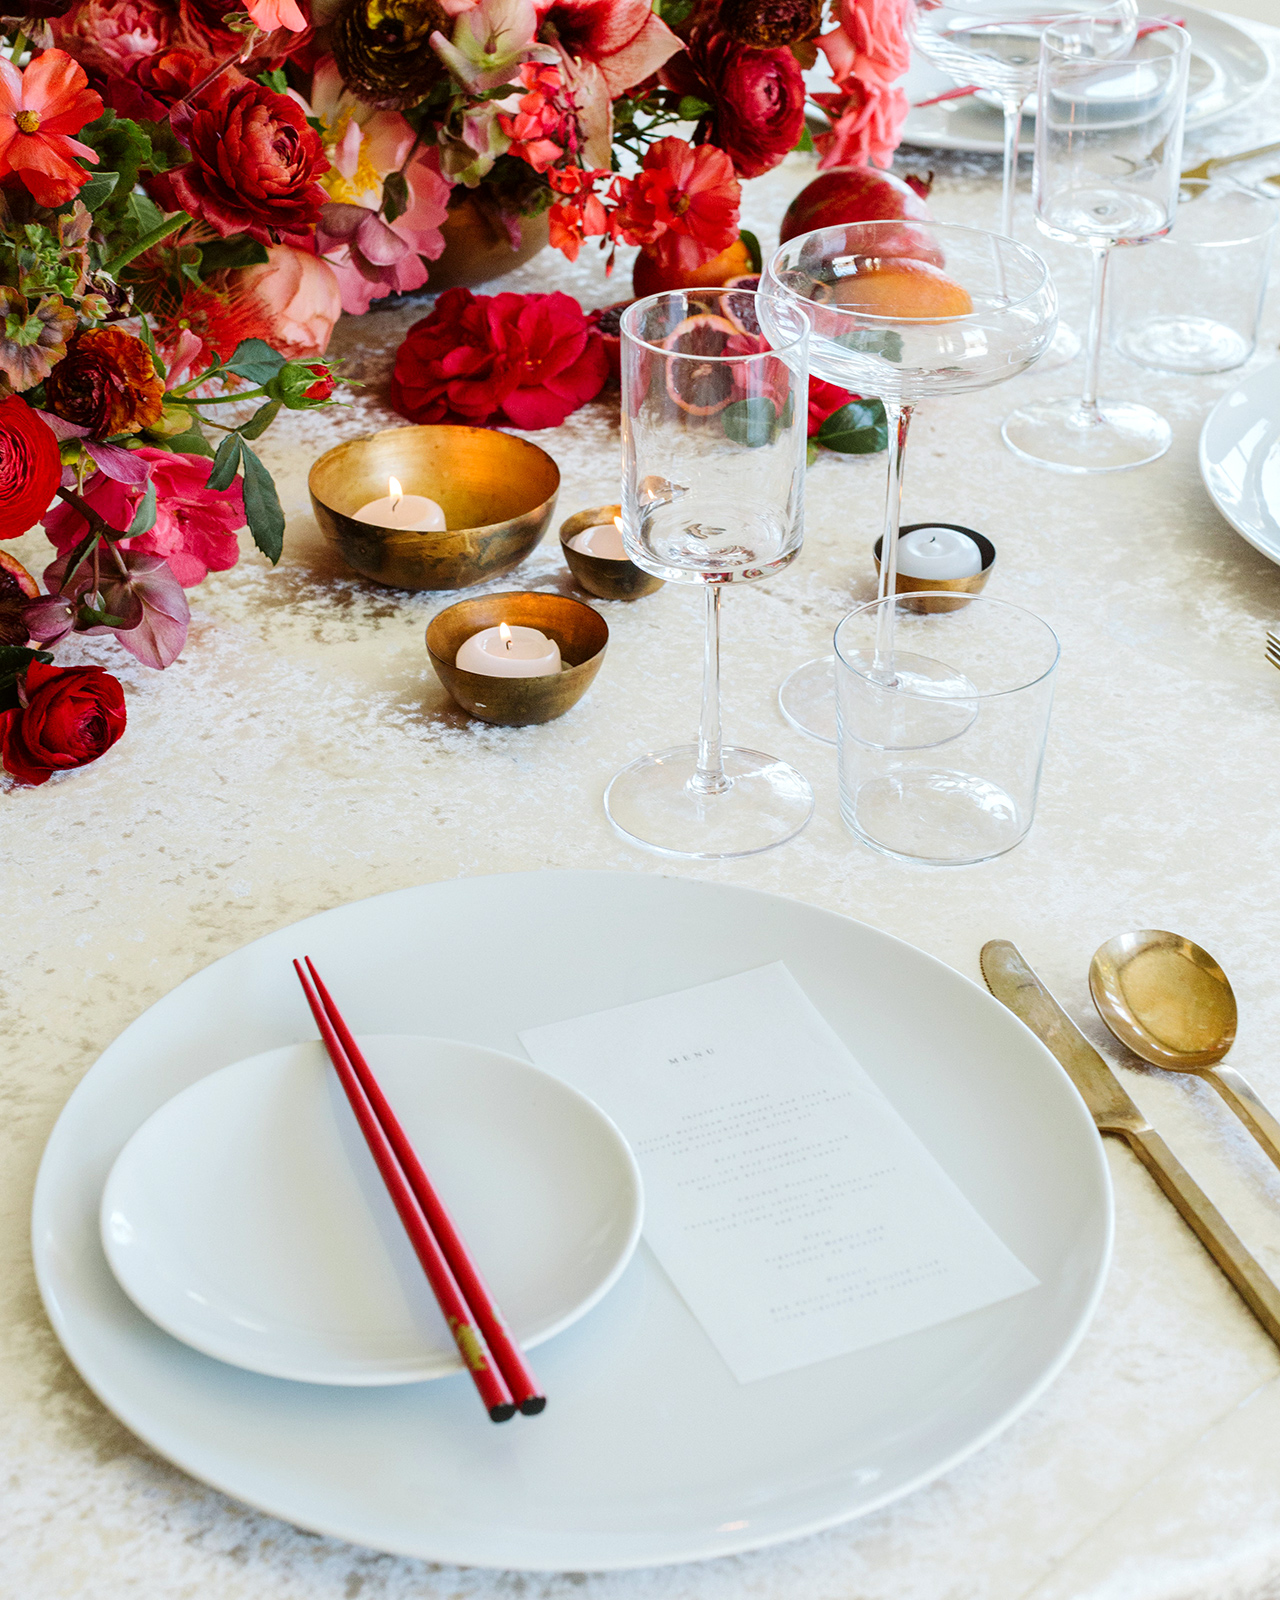 tea ceremony table setting white plate red chopsticks